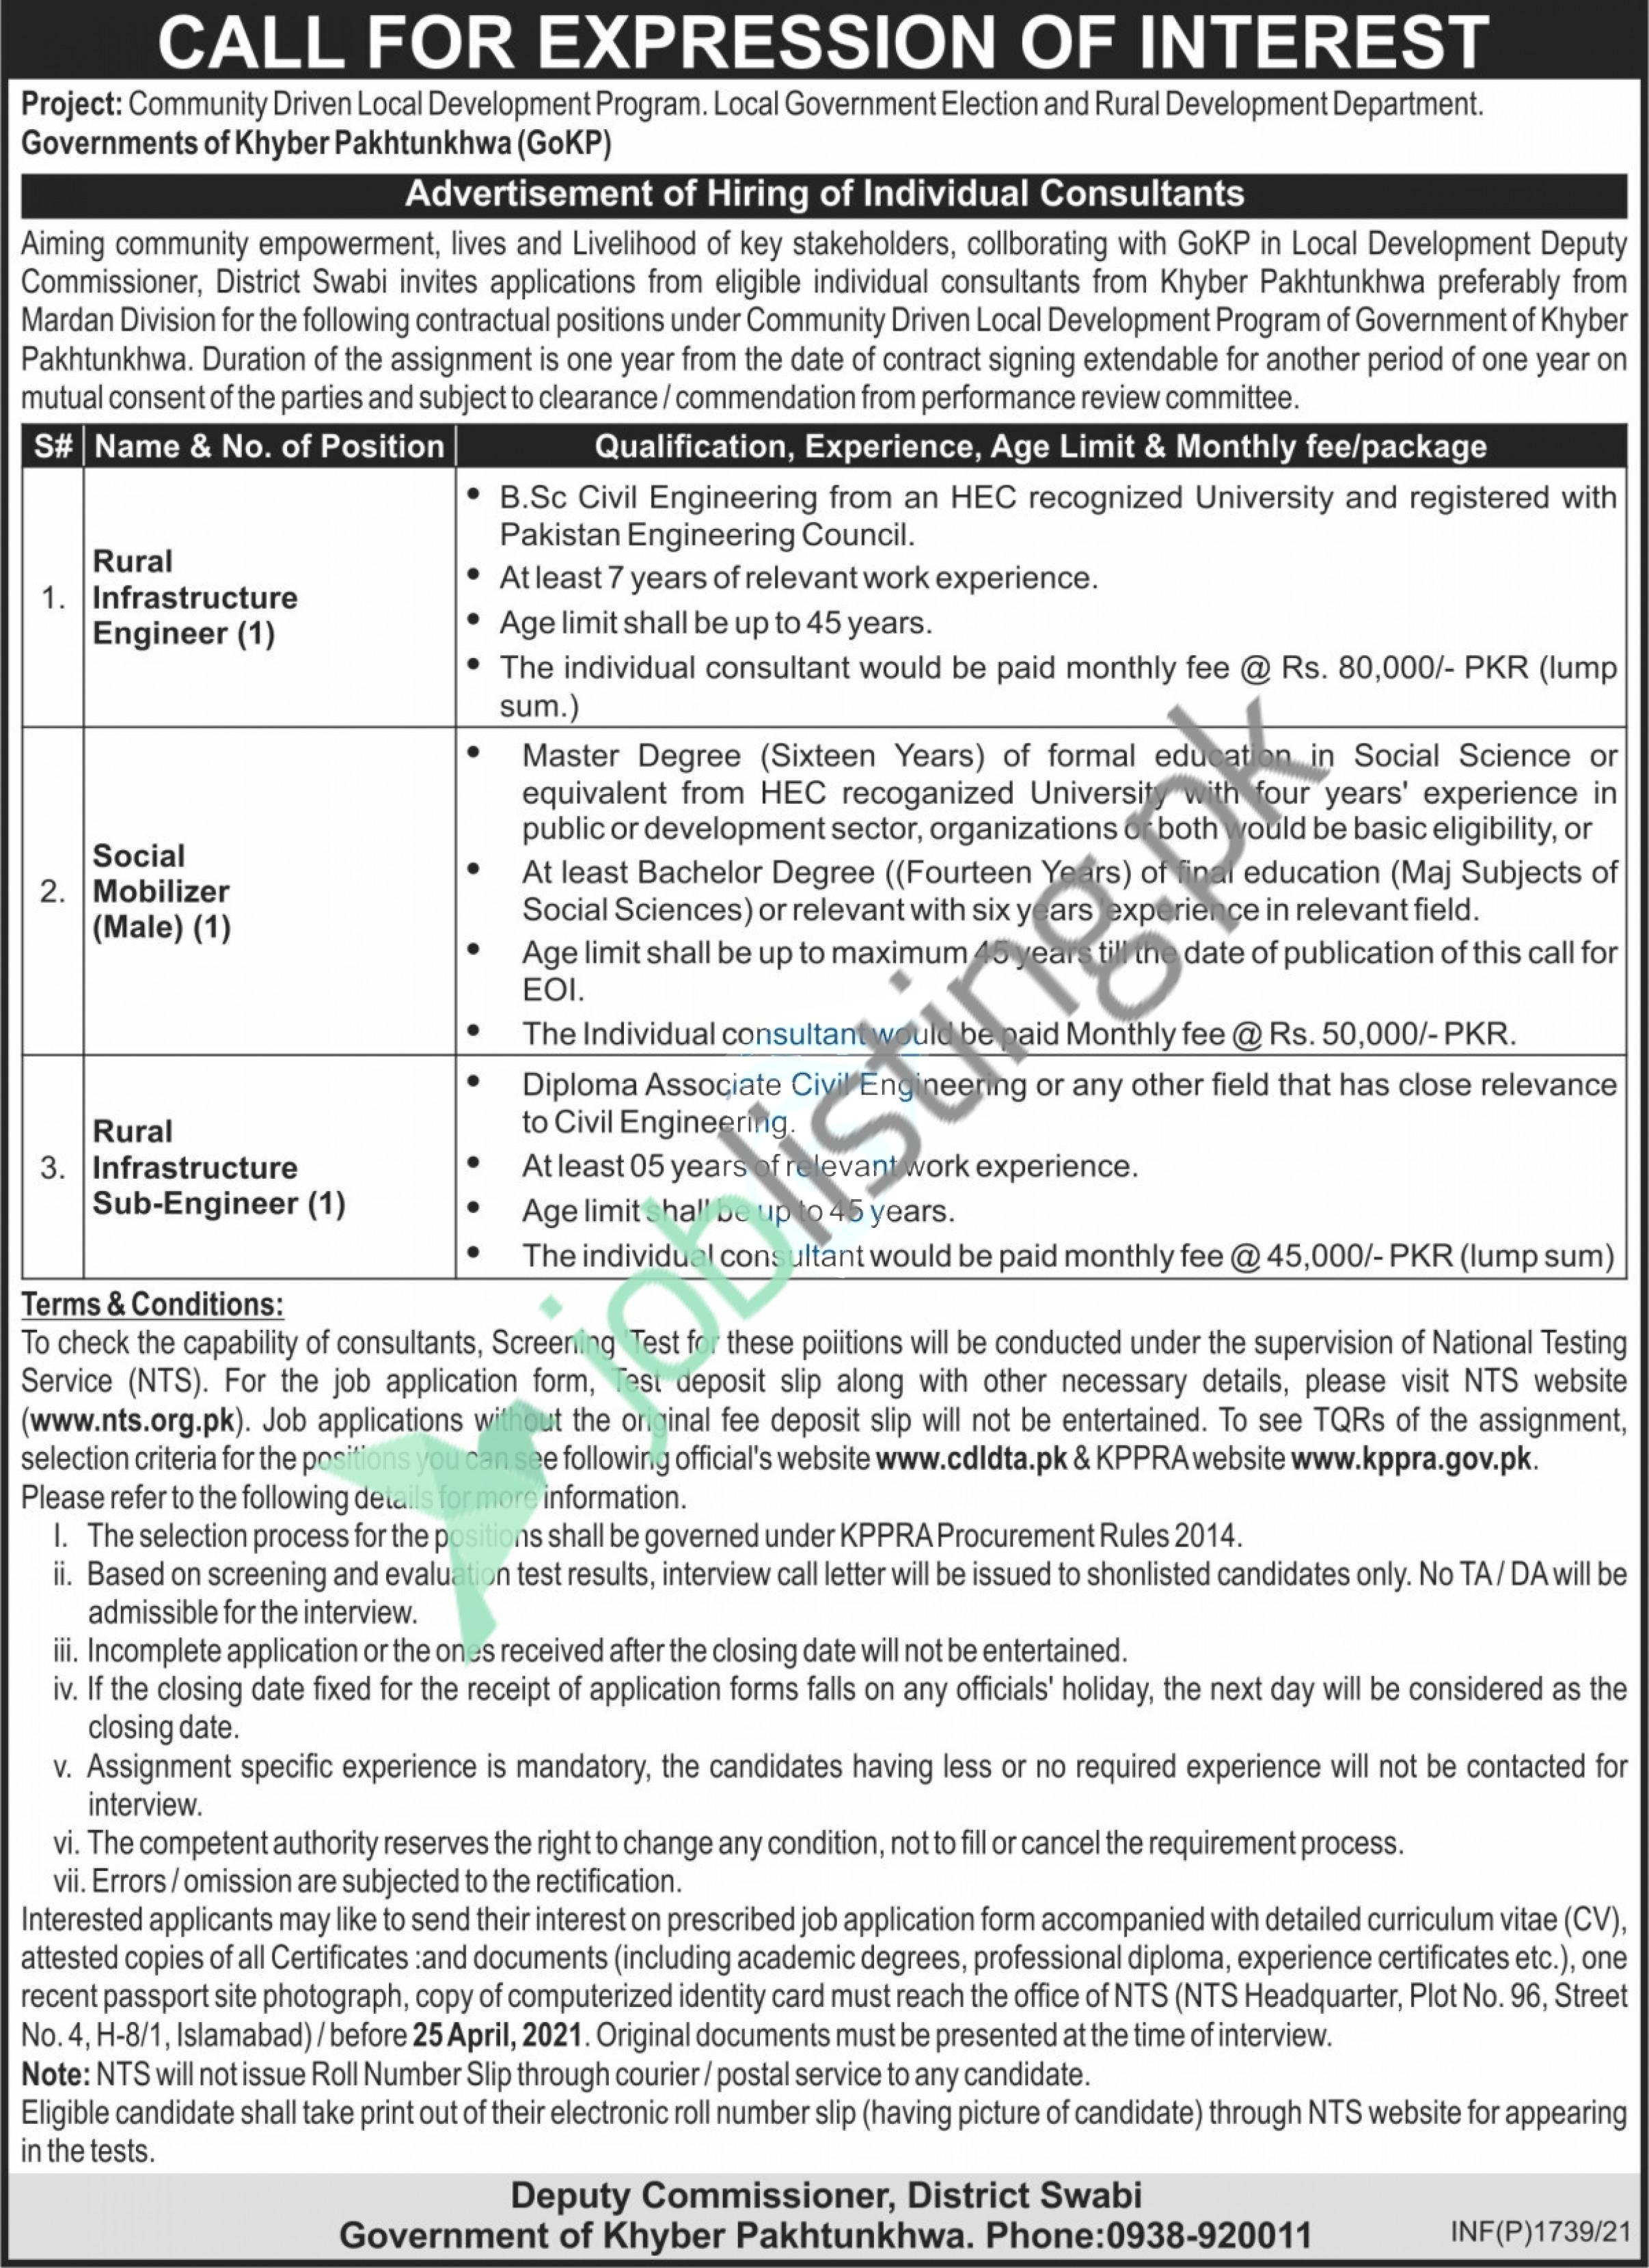 Situation Vacant in Deputy Commissioner Office Swabi